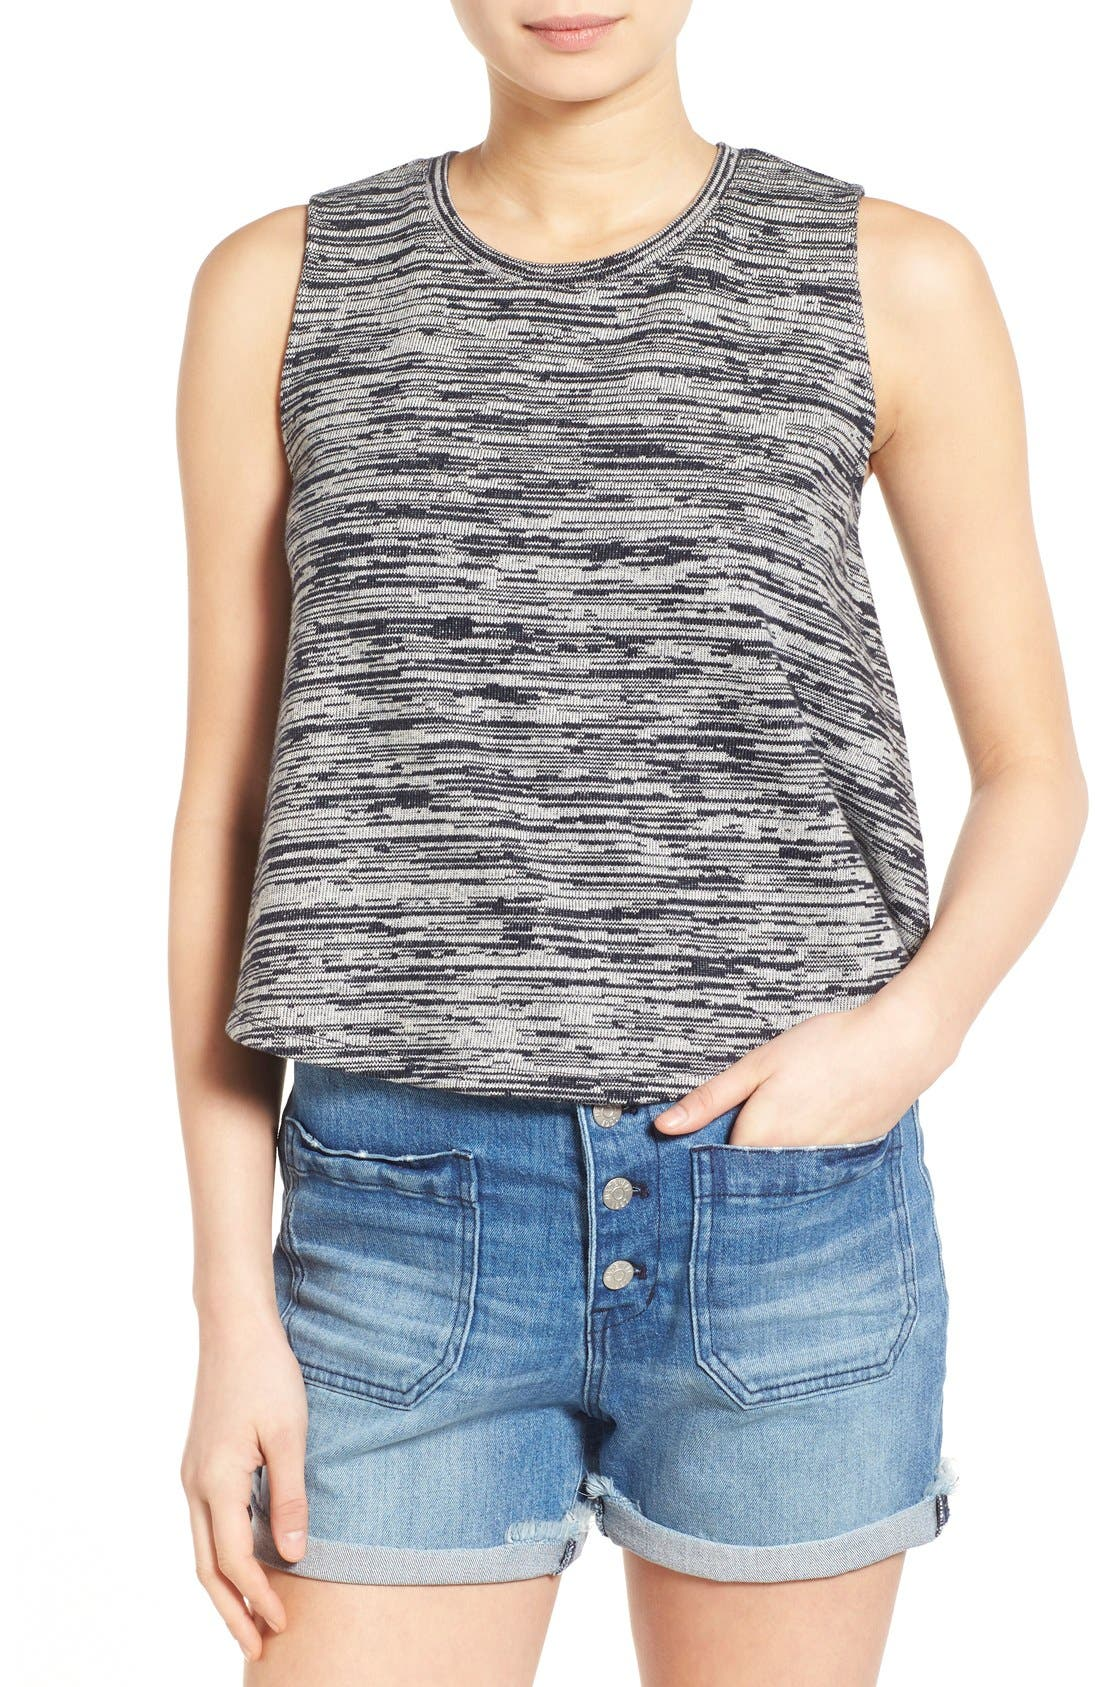 Alternate Image 1 Selected - Madewell 'Marty' Space Dye Tank